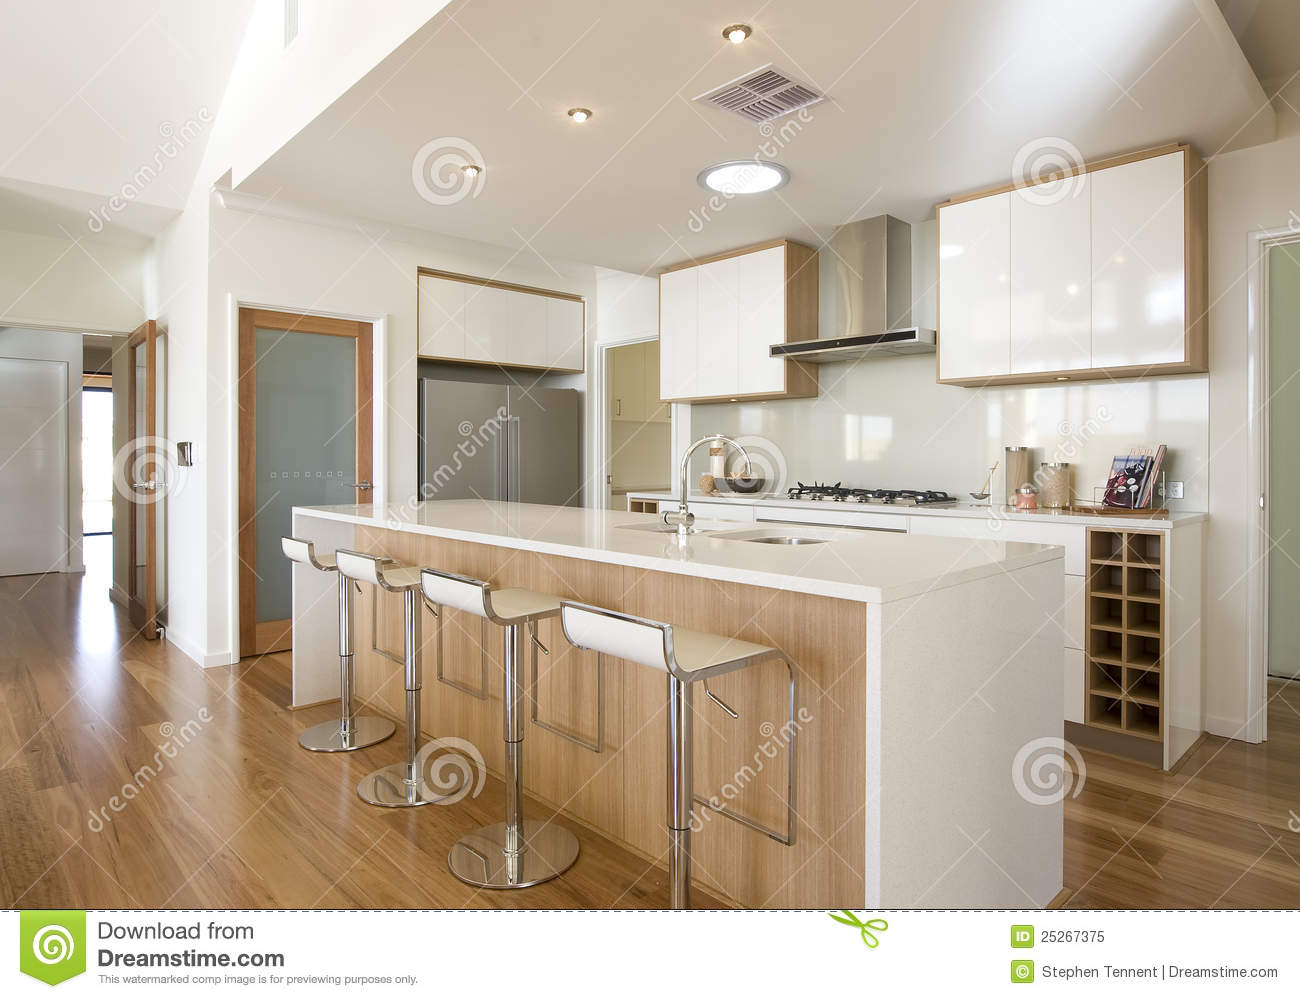 New Home Galley Kitchen Royalty Free Stock Photo Image